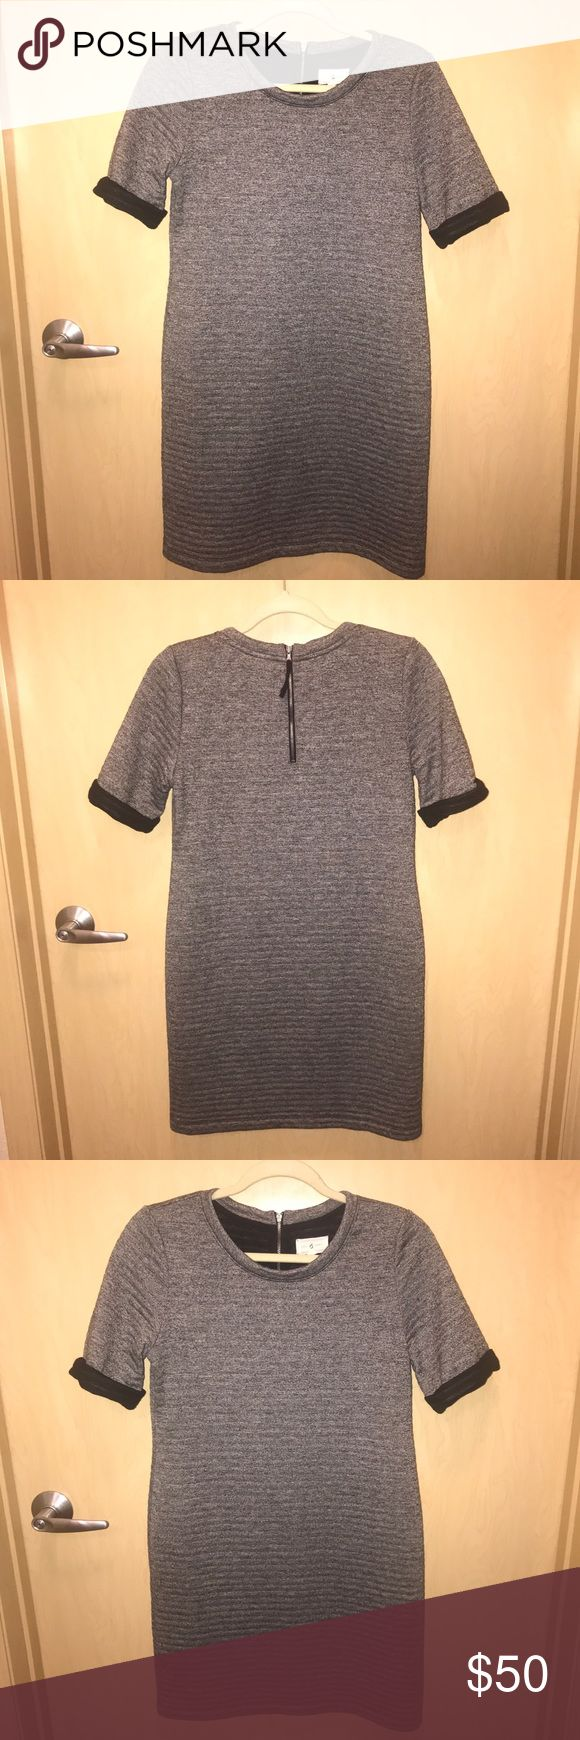 LOFT Lou and Grey dress - small LOFT brand Lou & Grey sweater dress with short sleeves in a size small. This dress is really comfortable and can be worn in all seasons with its versatility! Has only been worn a few times. Lou & Grey Dresses Midi